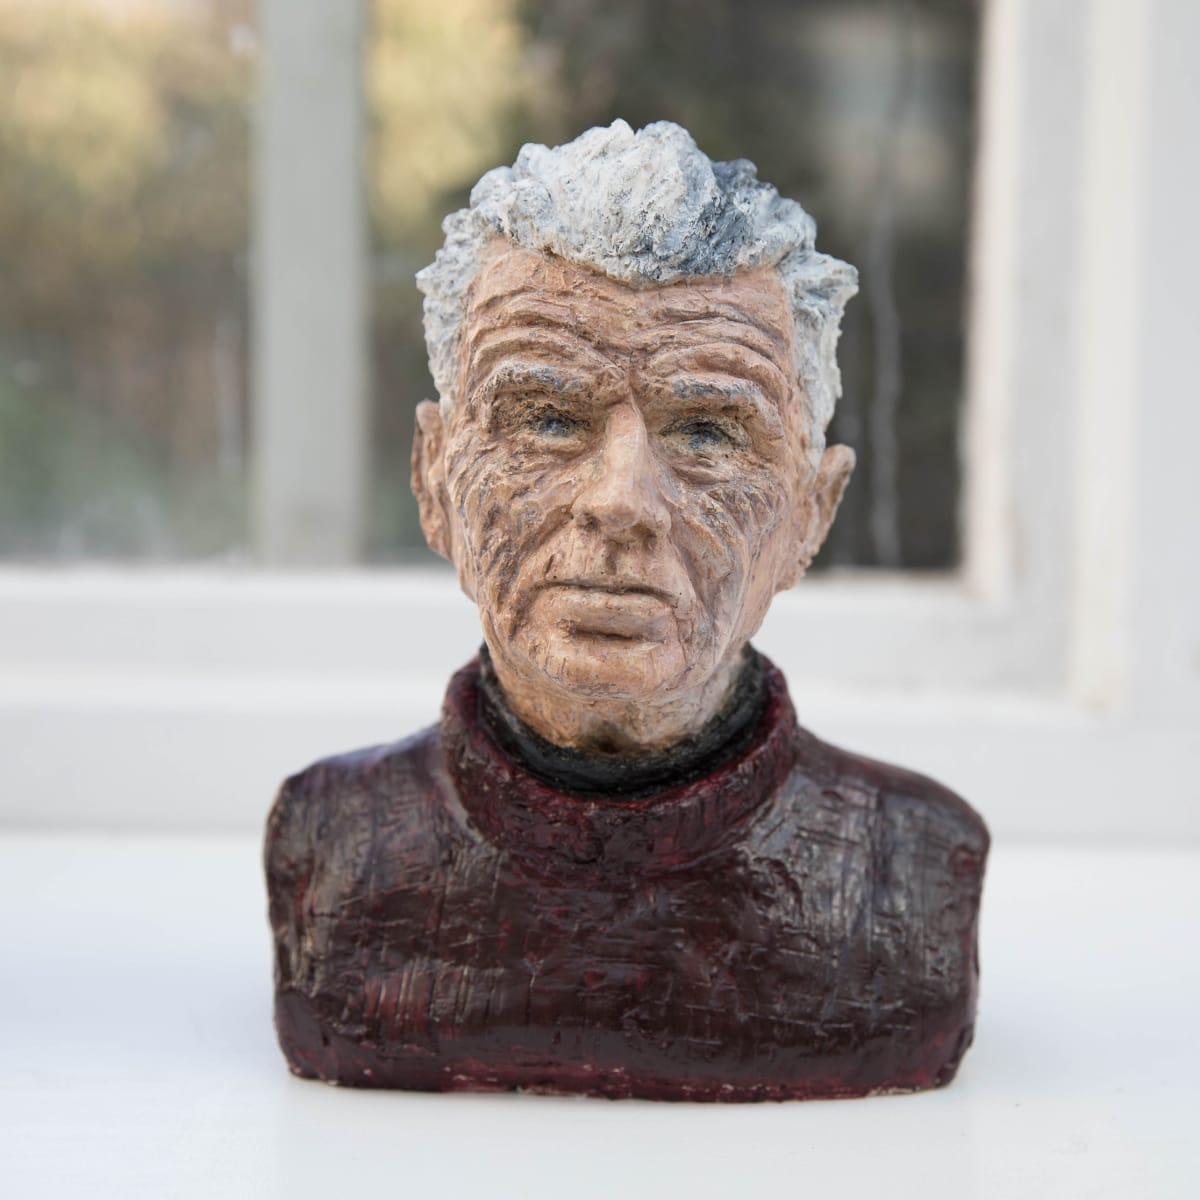 Nicole Farhi Samuel Beckett ciment fondu and acrylic; hand-painted bronze casts available to purchase 22 x 16 x 7 cm edition of 7 + 3 APs